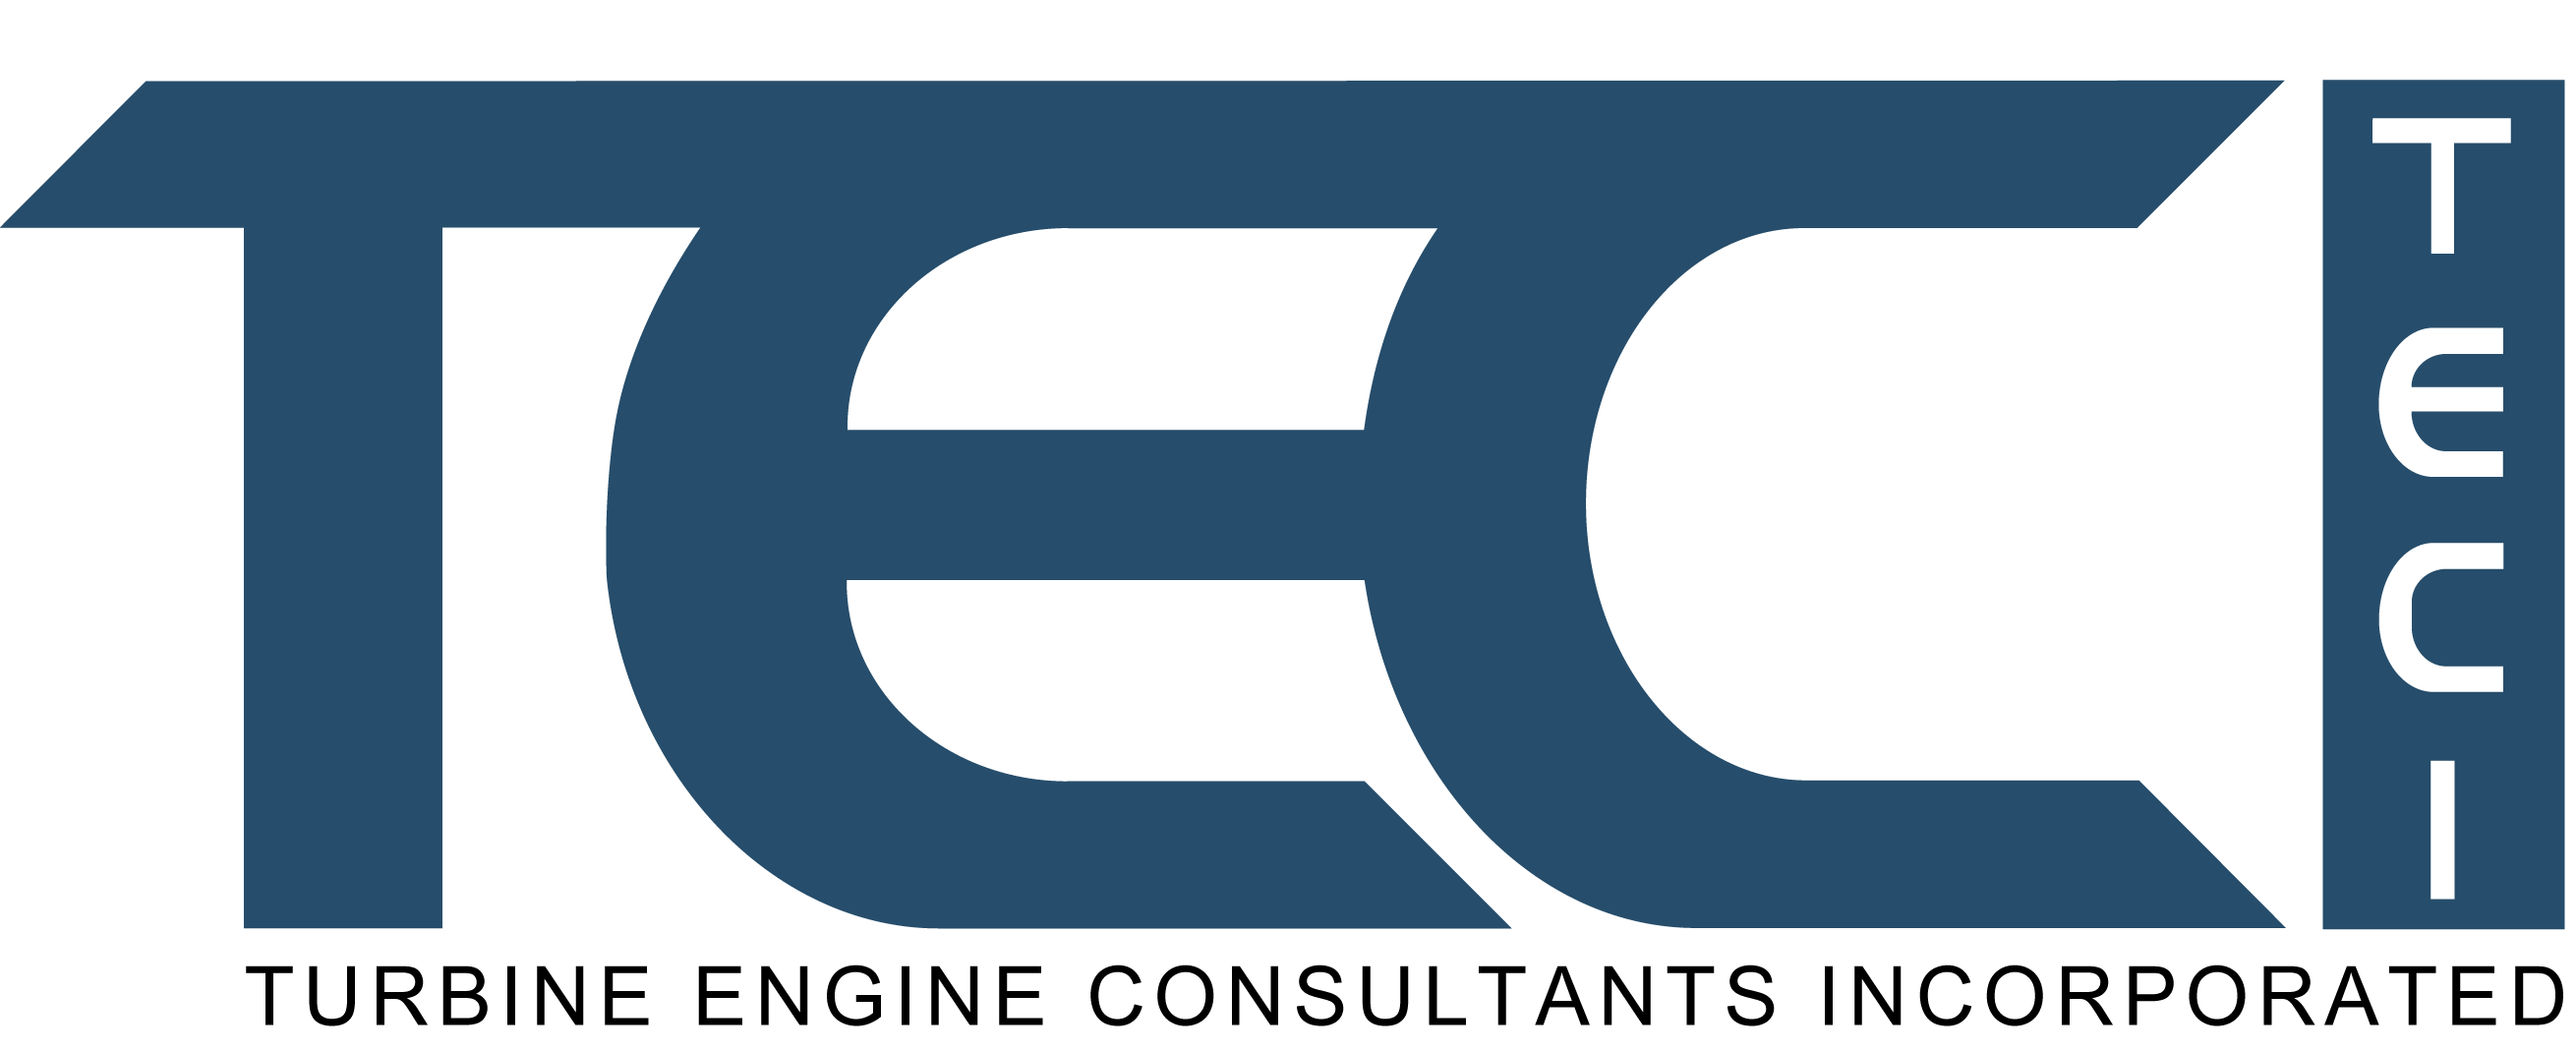 Turbine Engine Consultants Inc.>